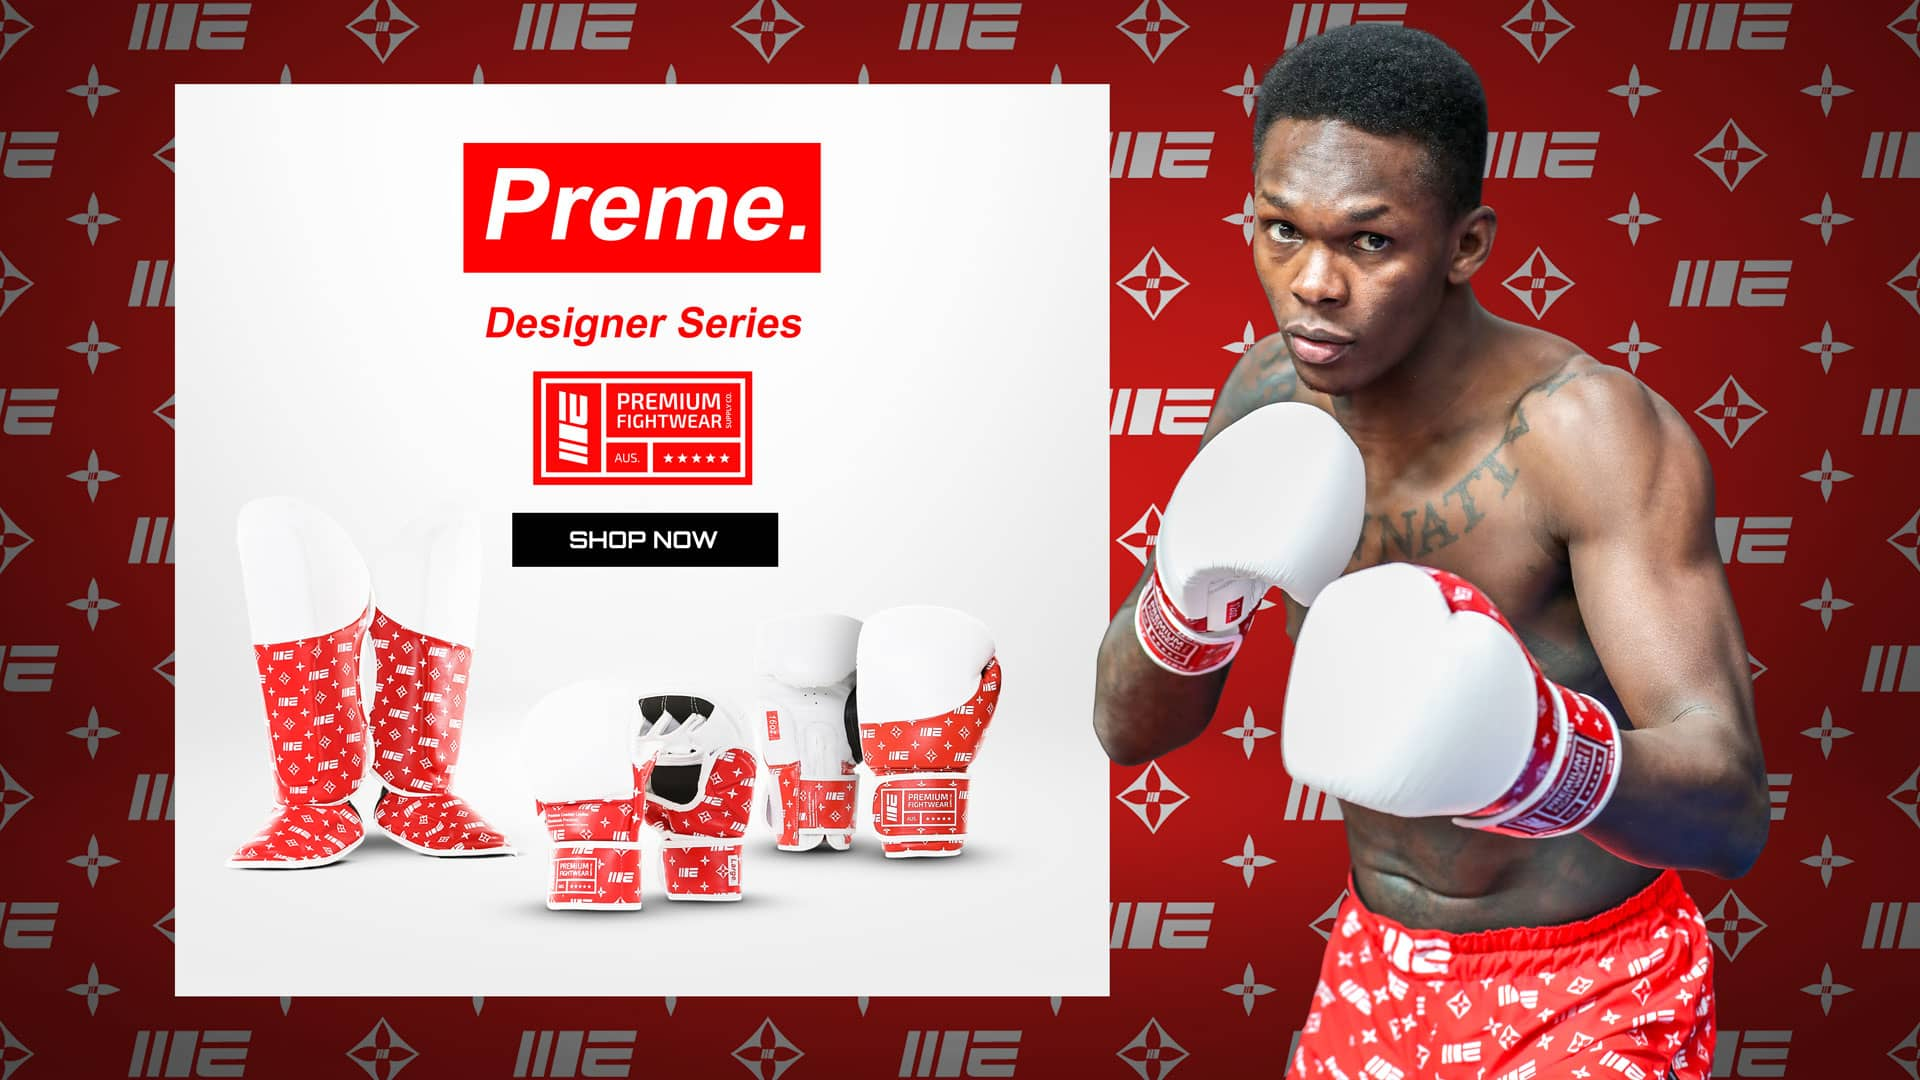 Engage Preme Designer Series Fight Gear Collection